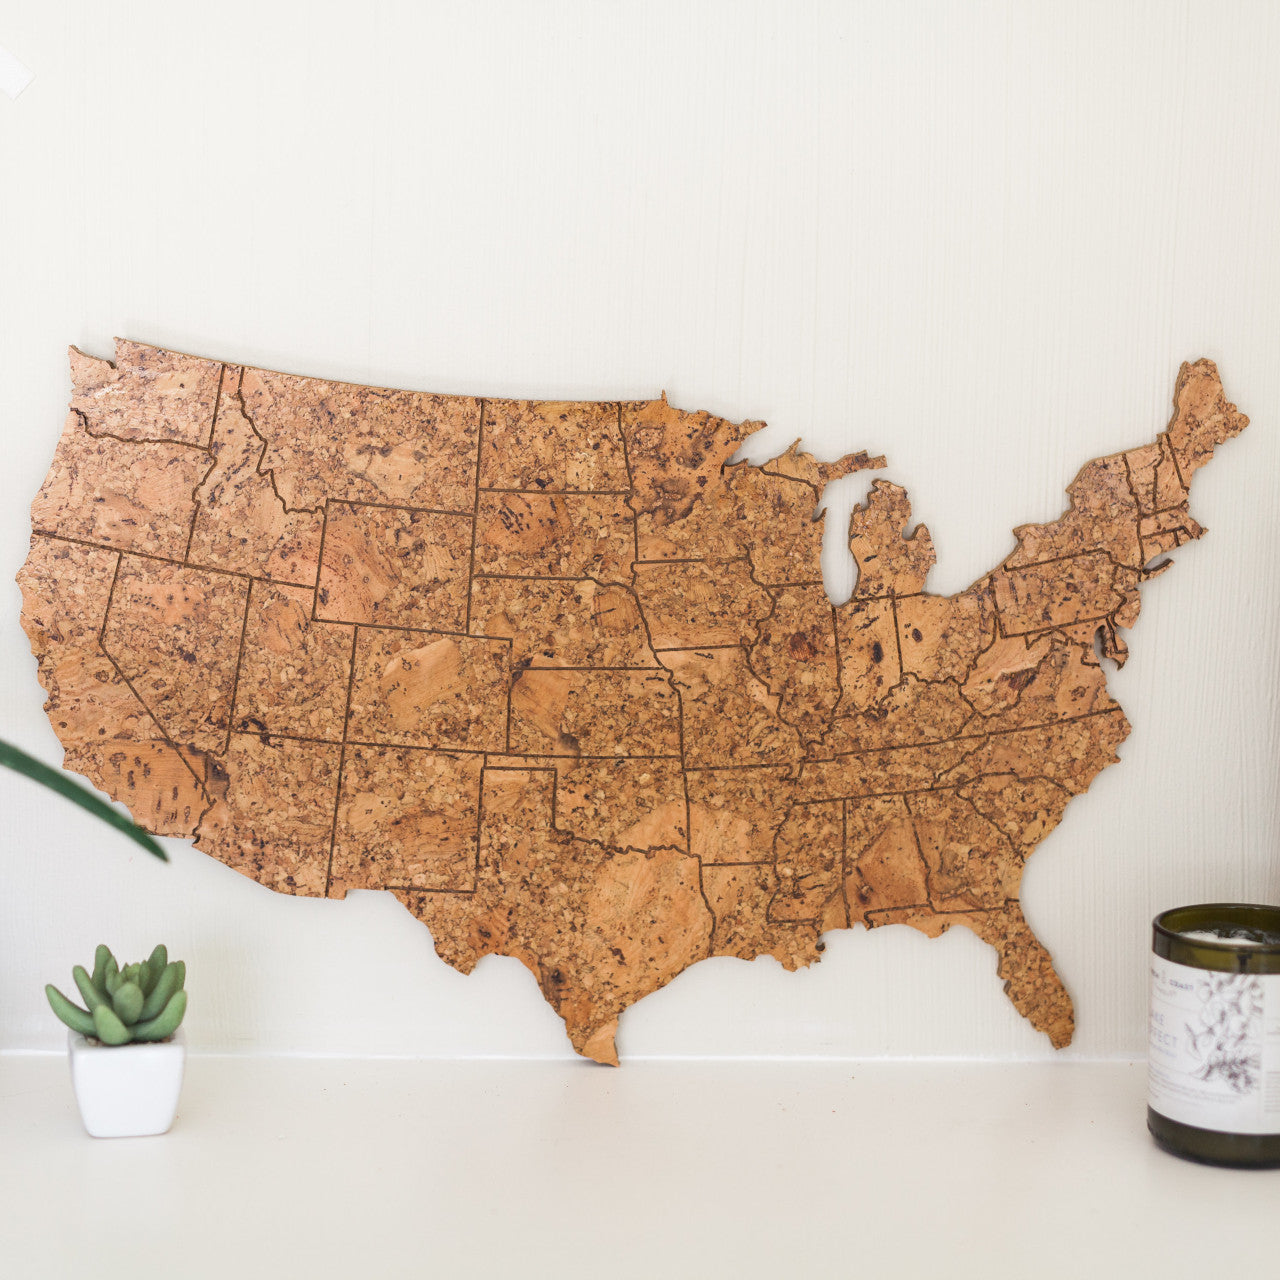 GEO 101 Design - Cork Map of the United States - Medium Size, Wall Decor - GEO 101 DESIGN